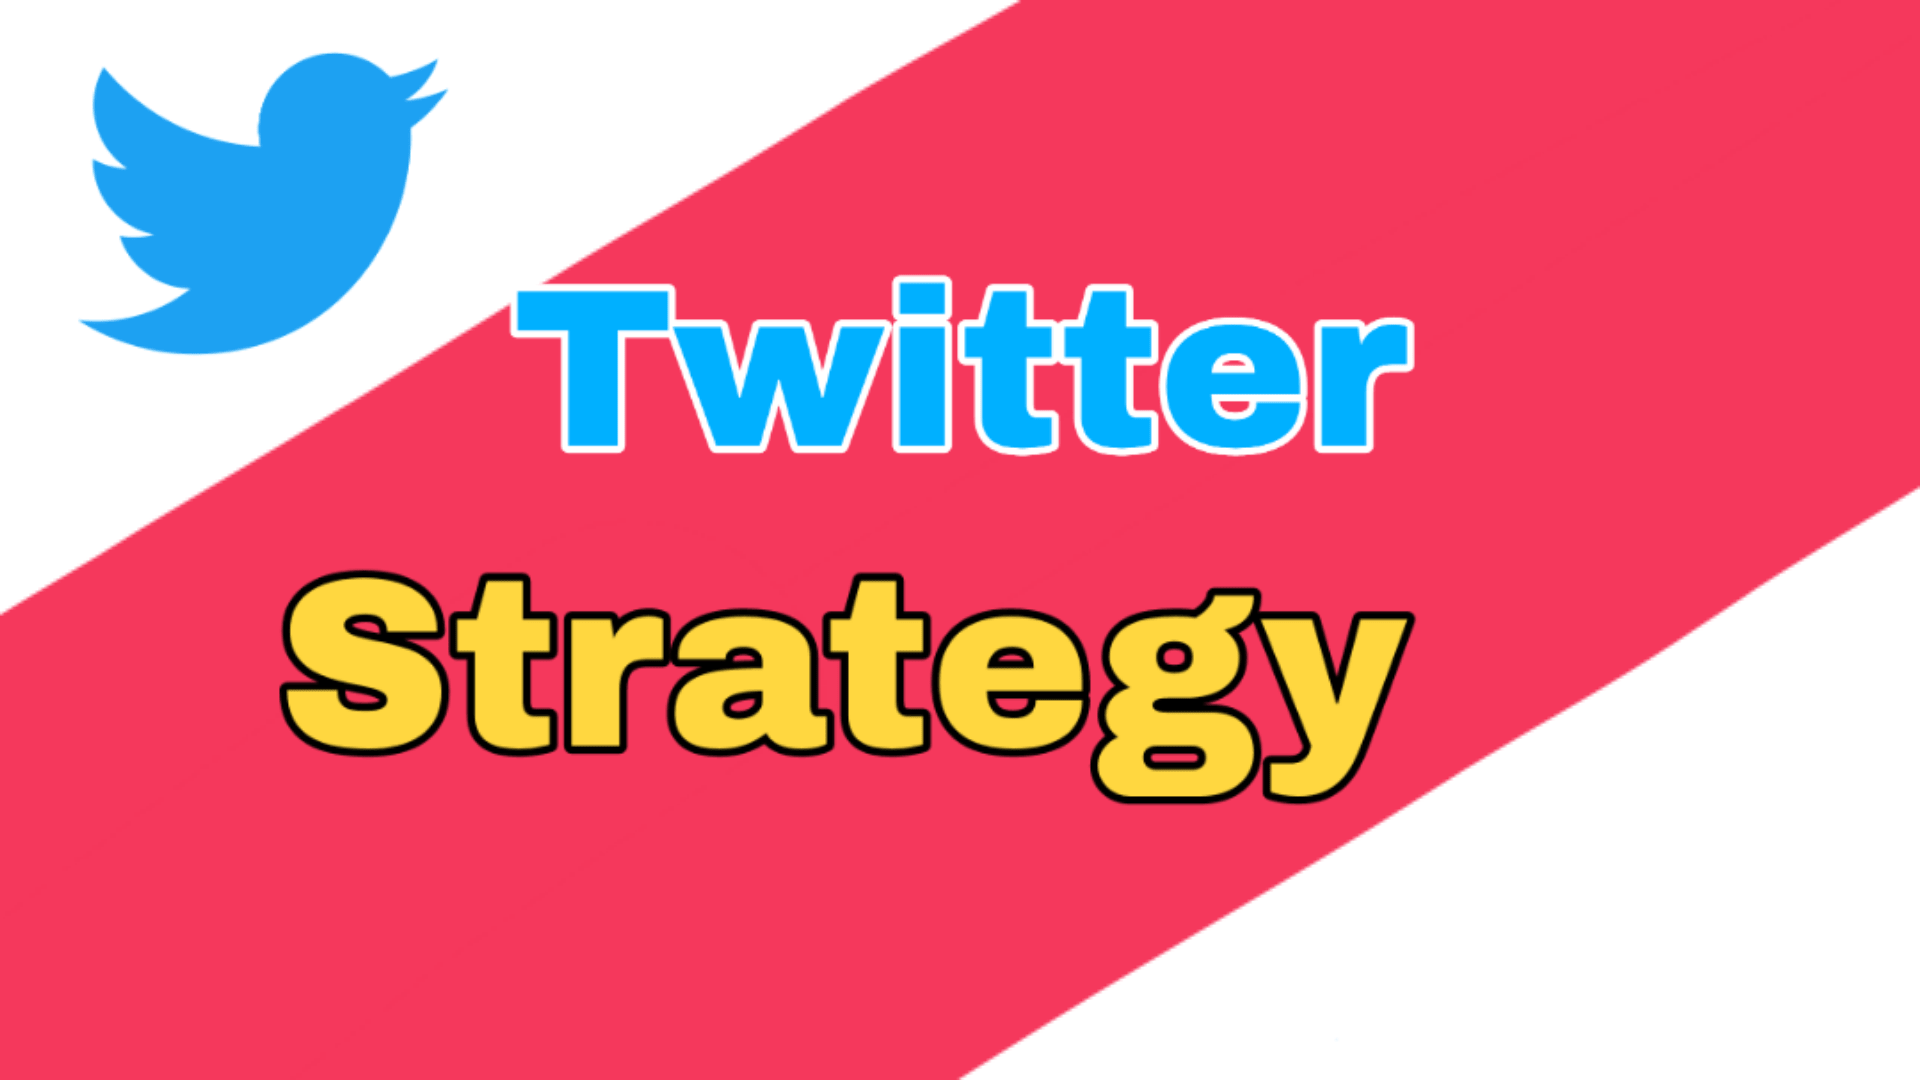 Effective Ways To Build Twitter Strategy For Business & Brands 2